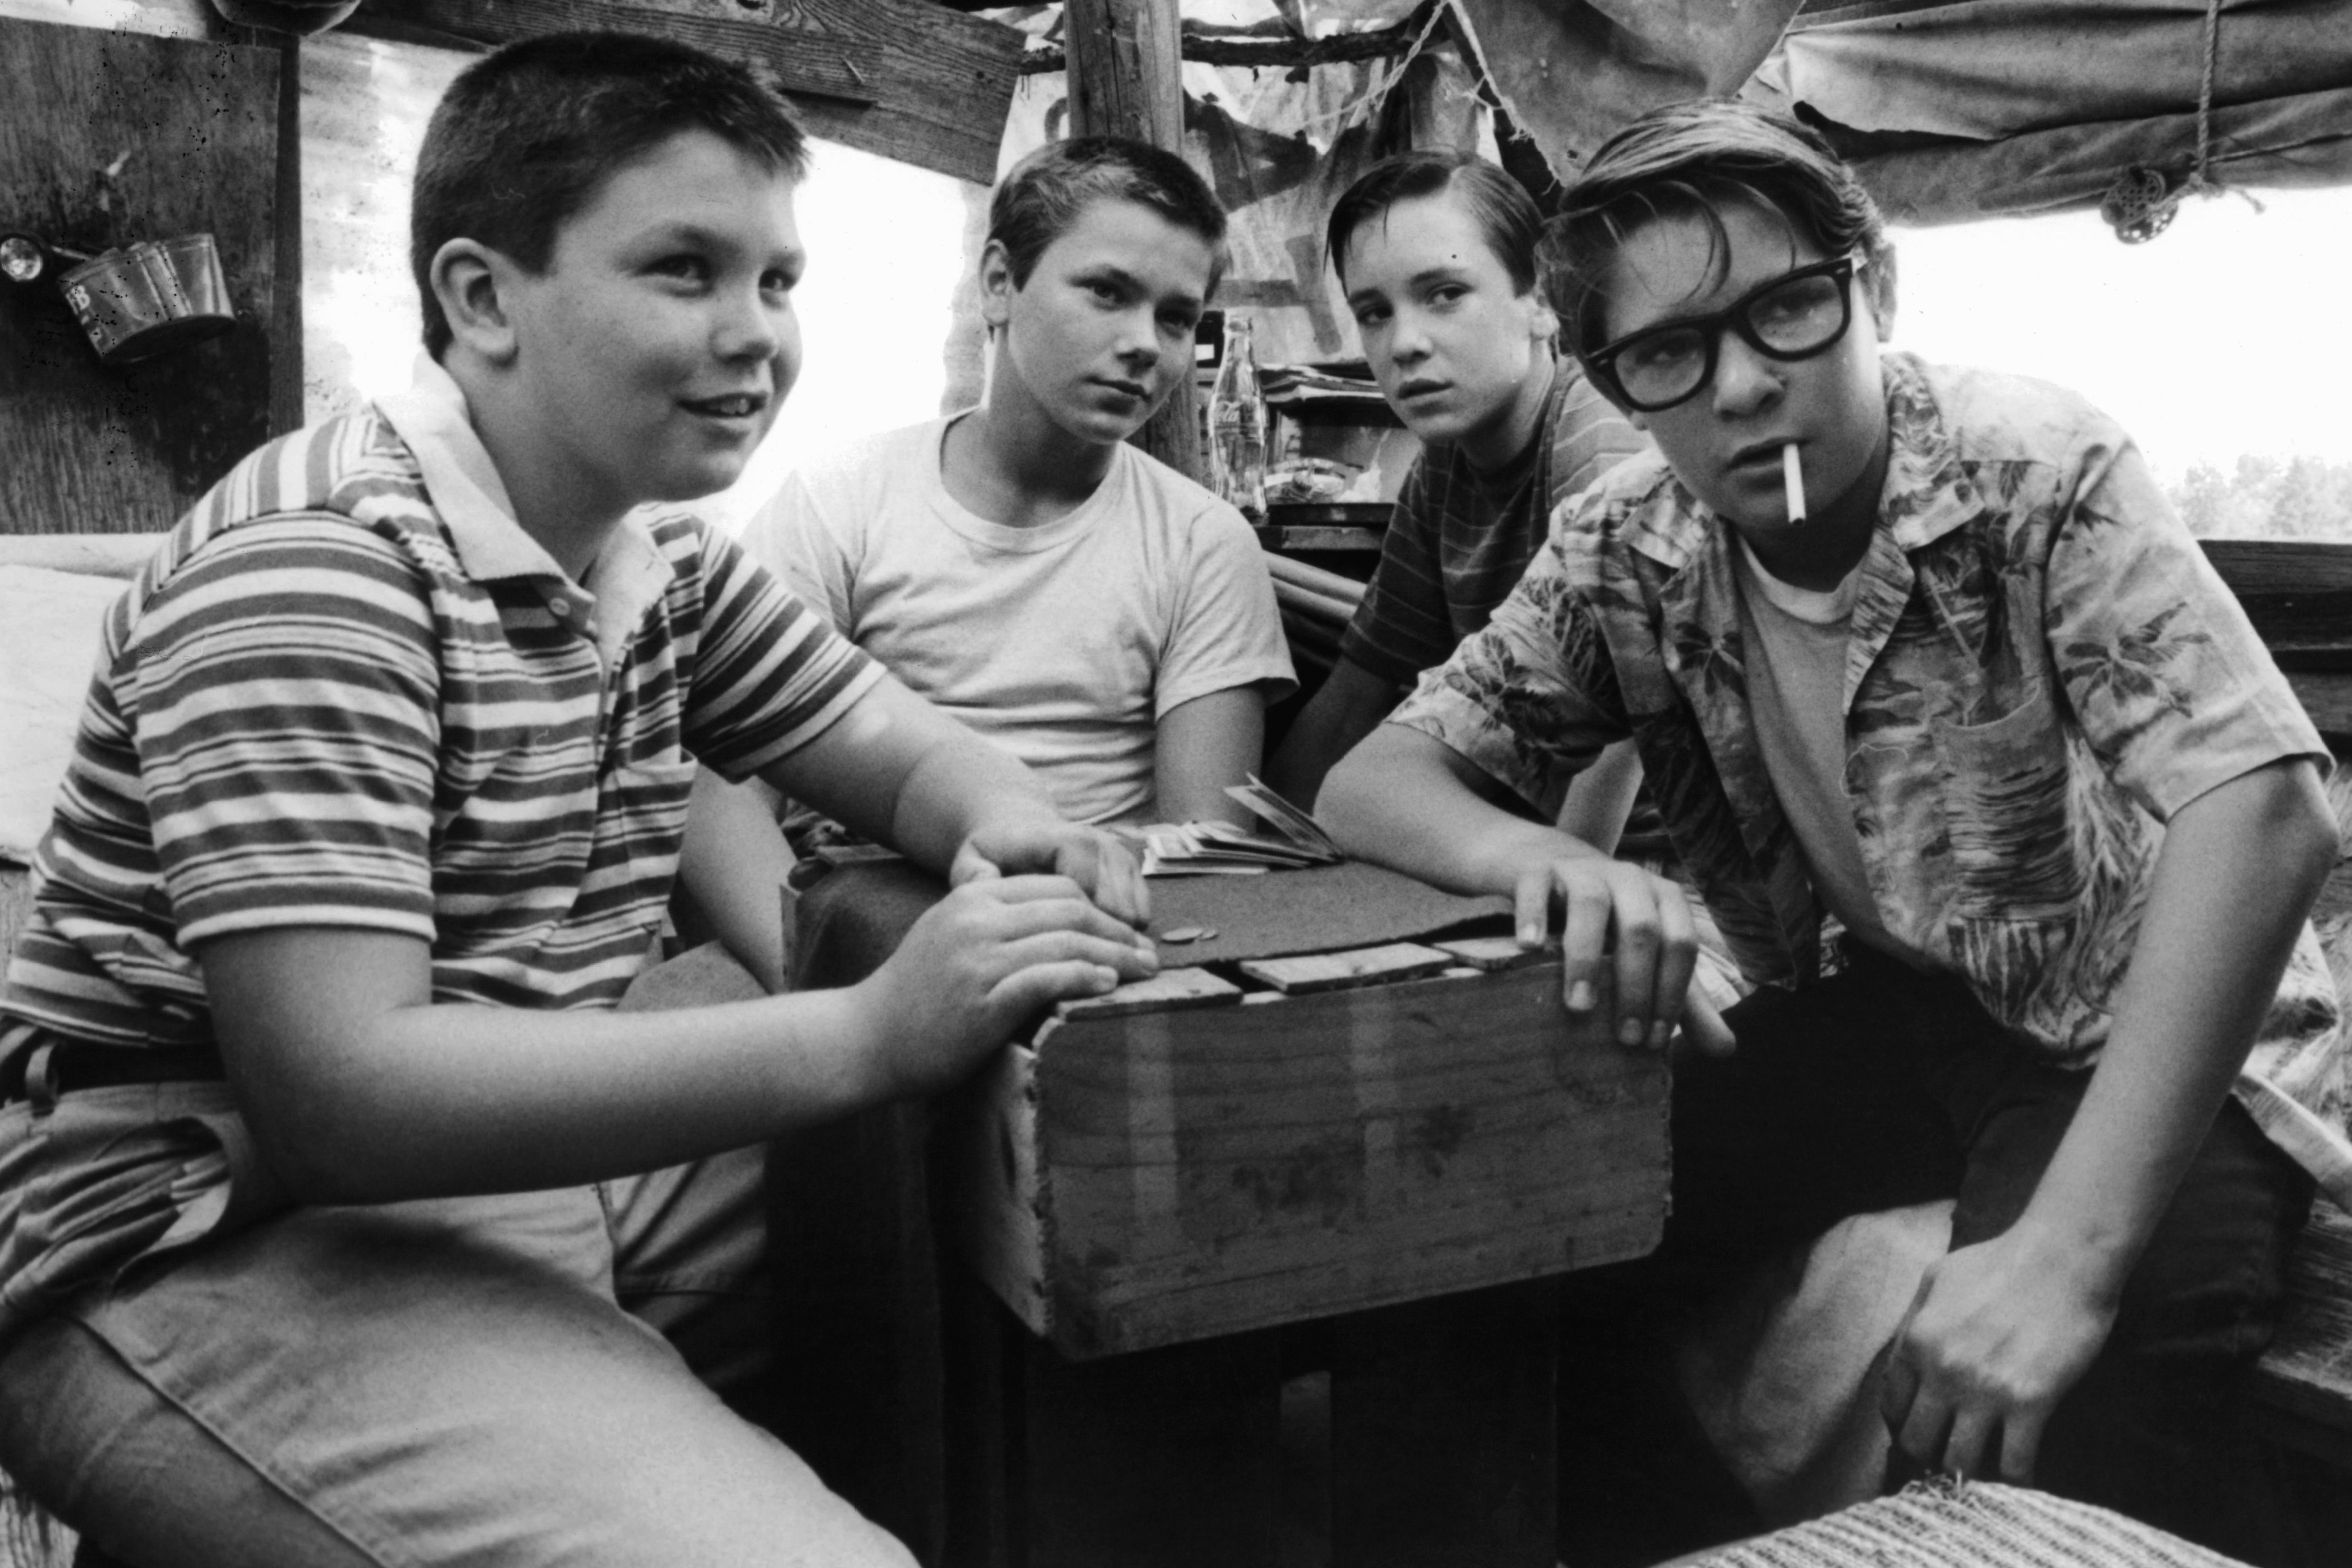 (from L-R) Jerry O'Connell, River Phoenix, Wil Wheaton, and Corey Feldman are gathered around together in a scene from the film Stand By Me (1986).